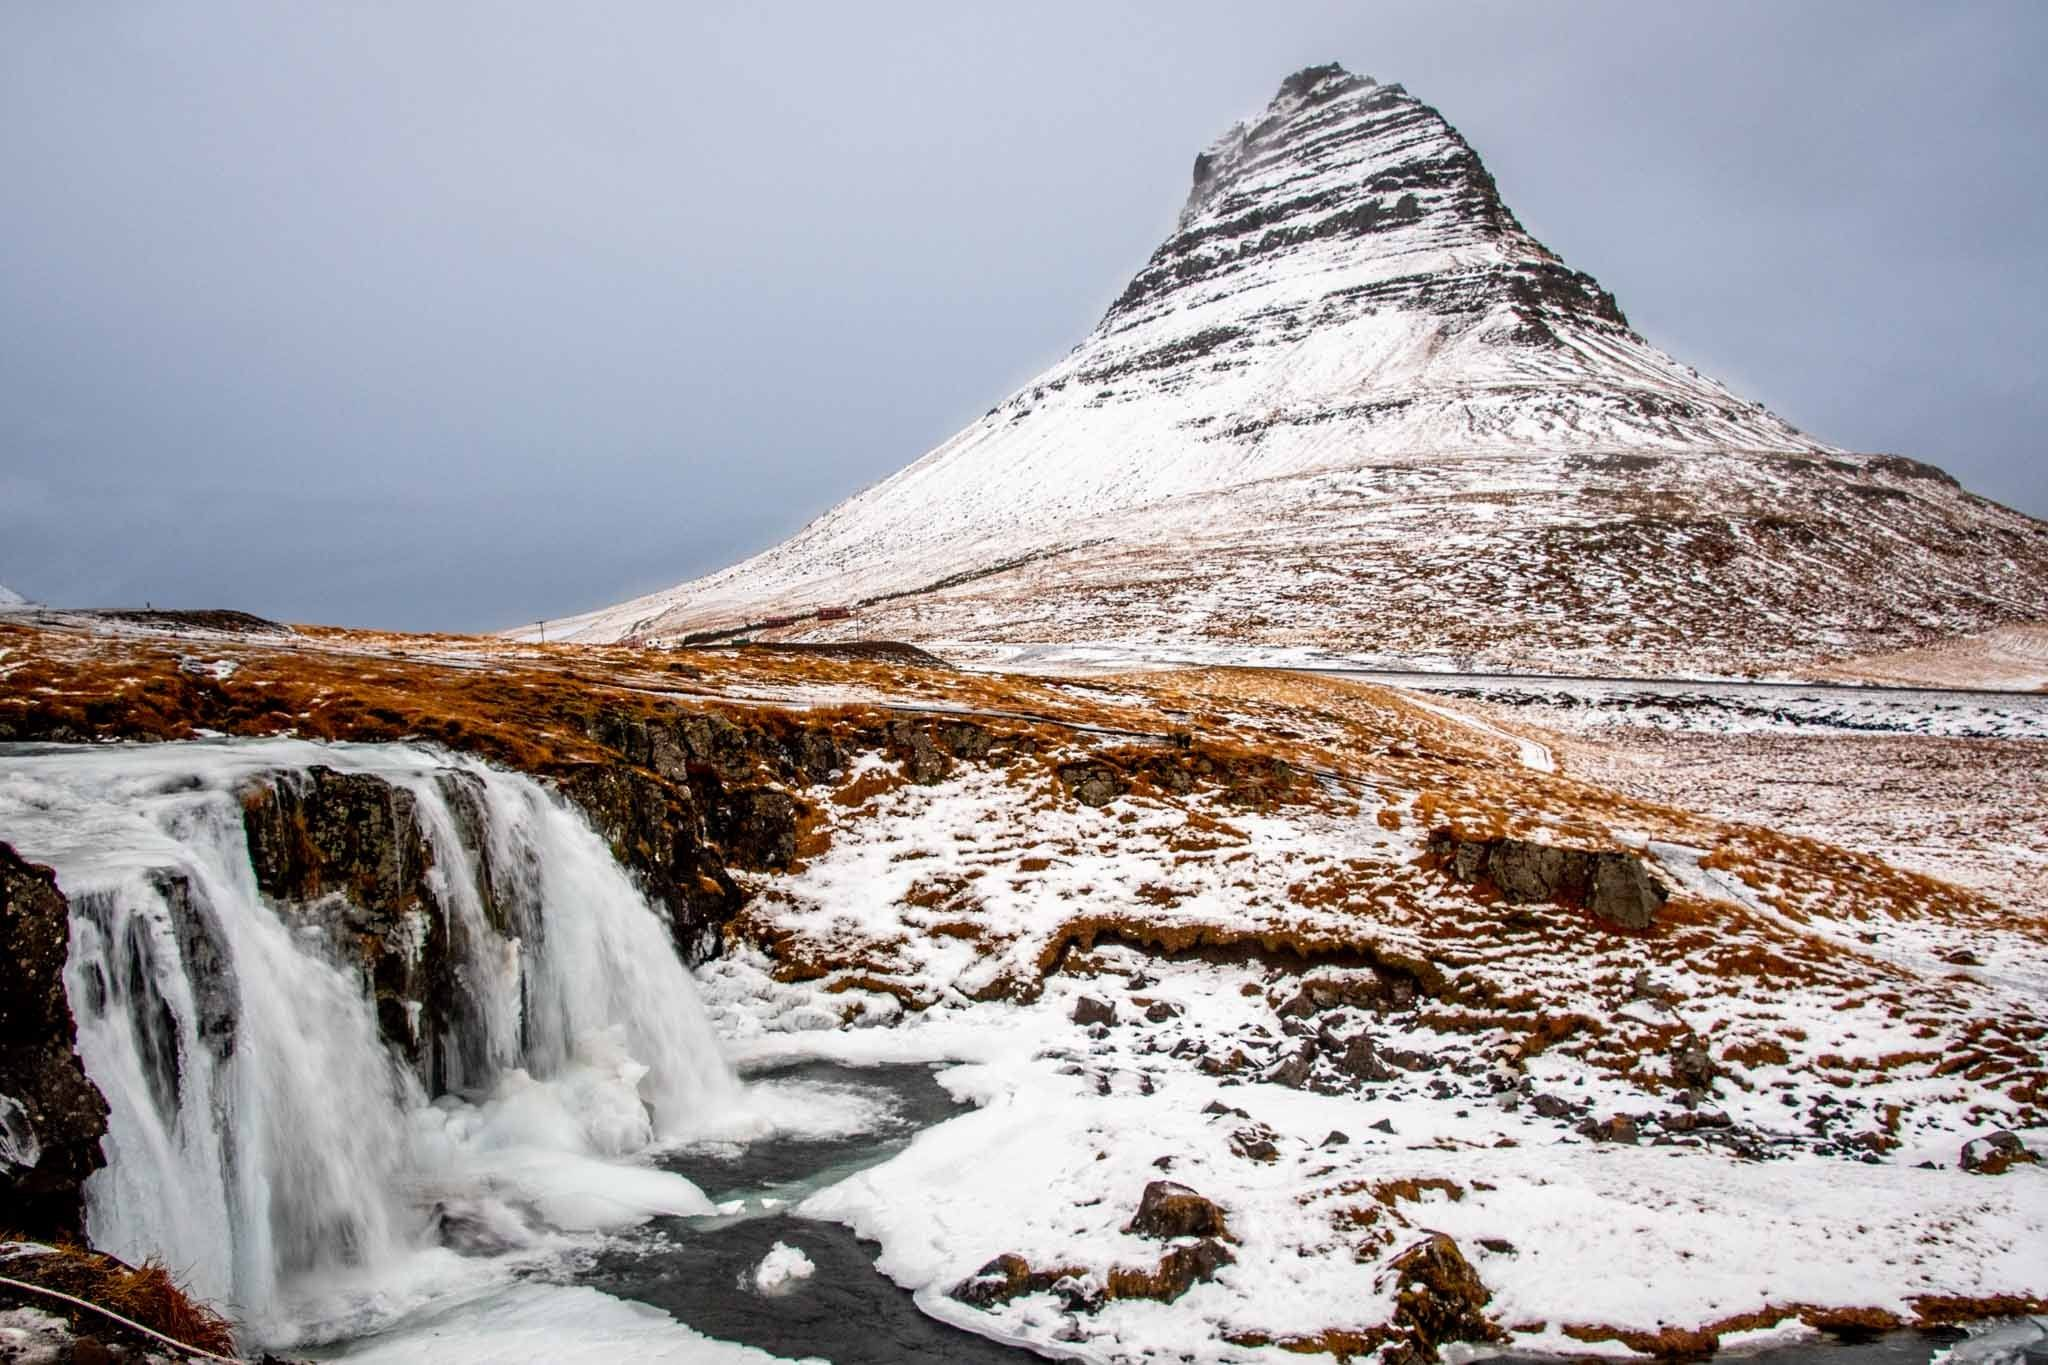 The Kirkufell Mountain in the winter with snow